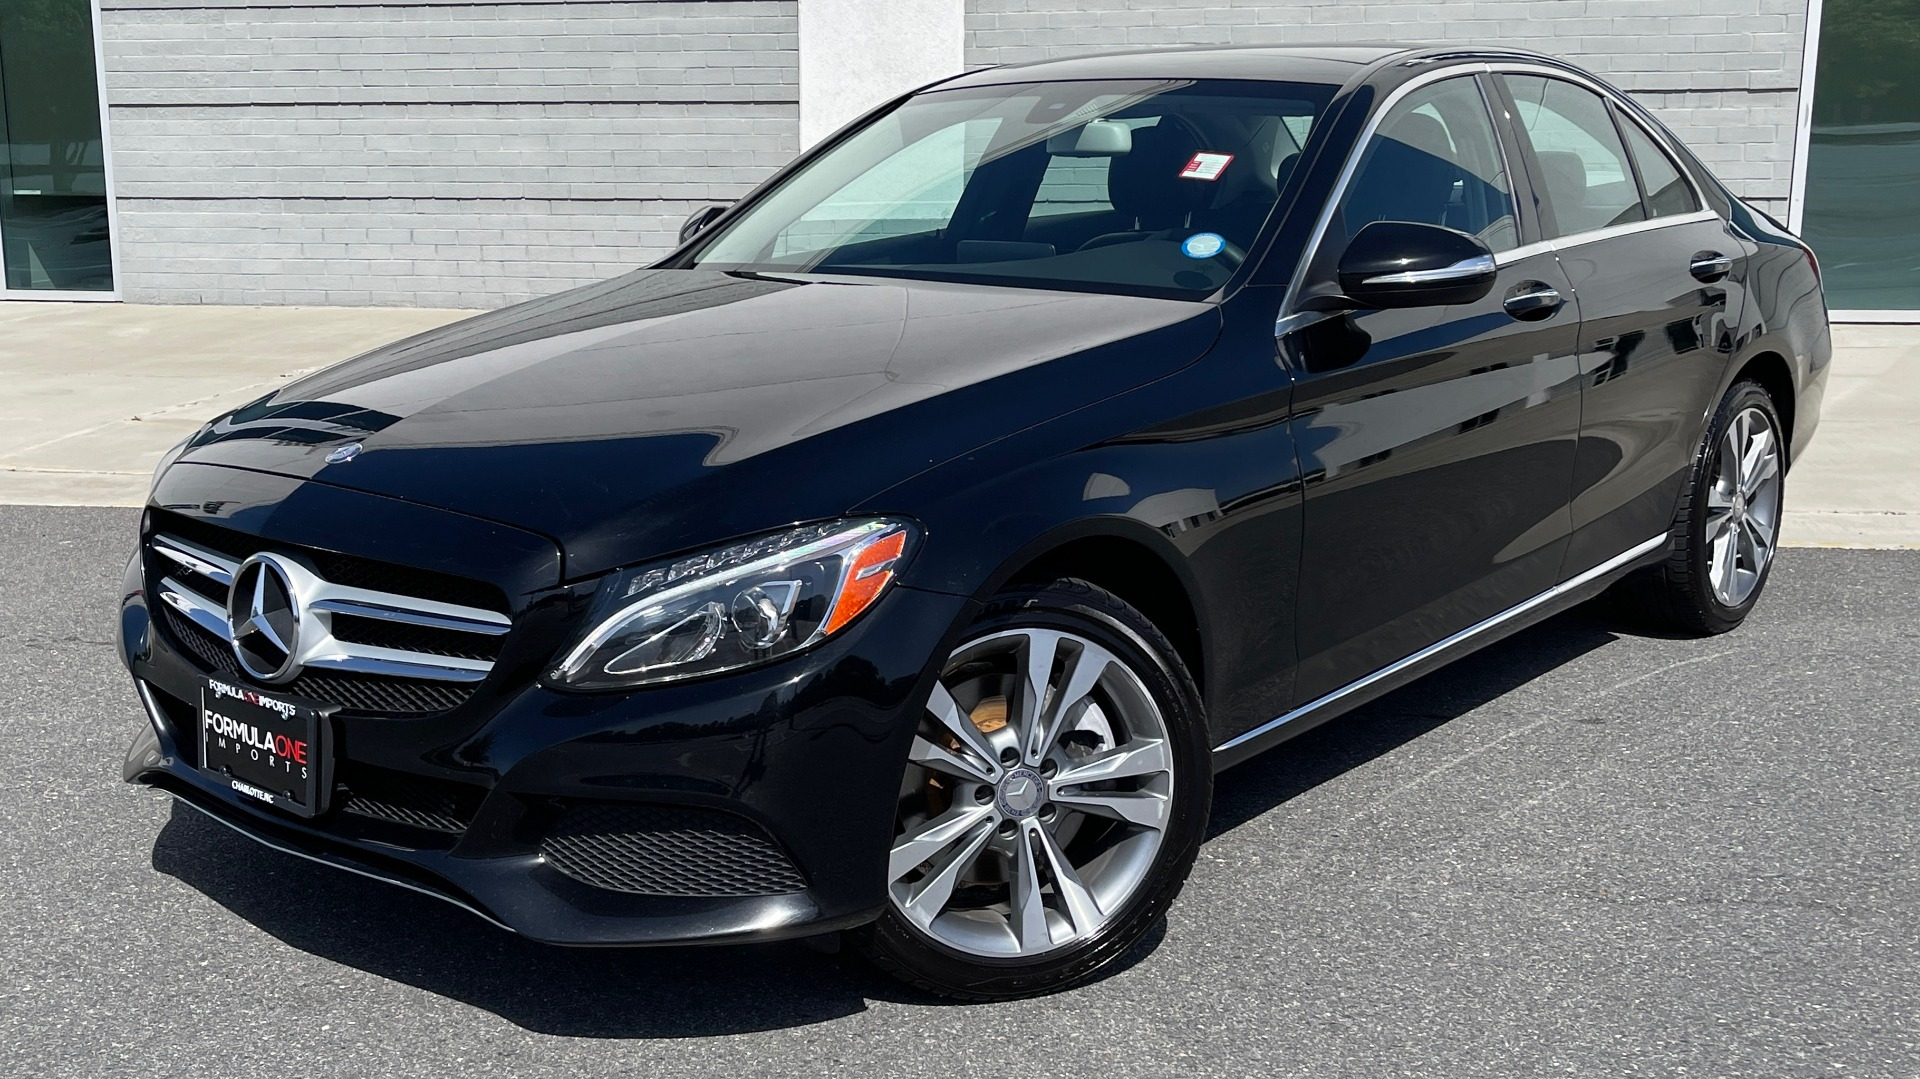 Used 2015 Mercedes-Benz C-CLASS C 300 4MATIC PREMIUM / MULTI MEDIA PKG / BSA / REARVIEW for sale $21,795 at Formula Imports in Charlotte NC 28227 1